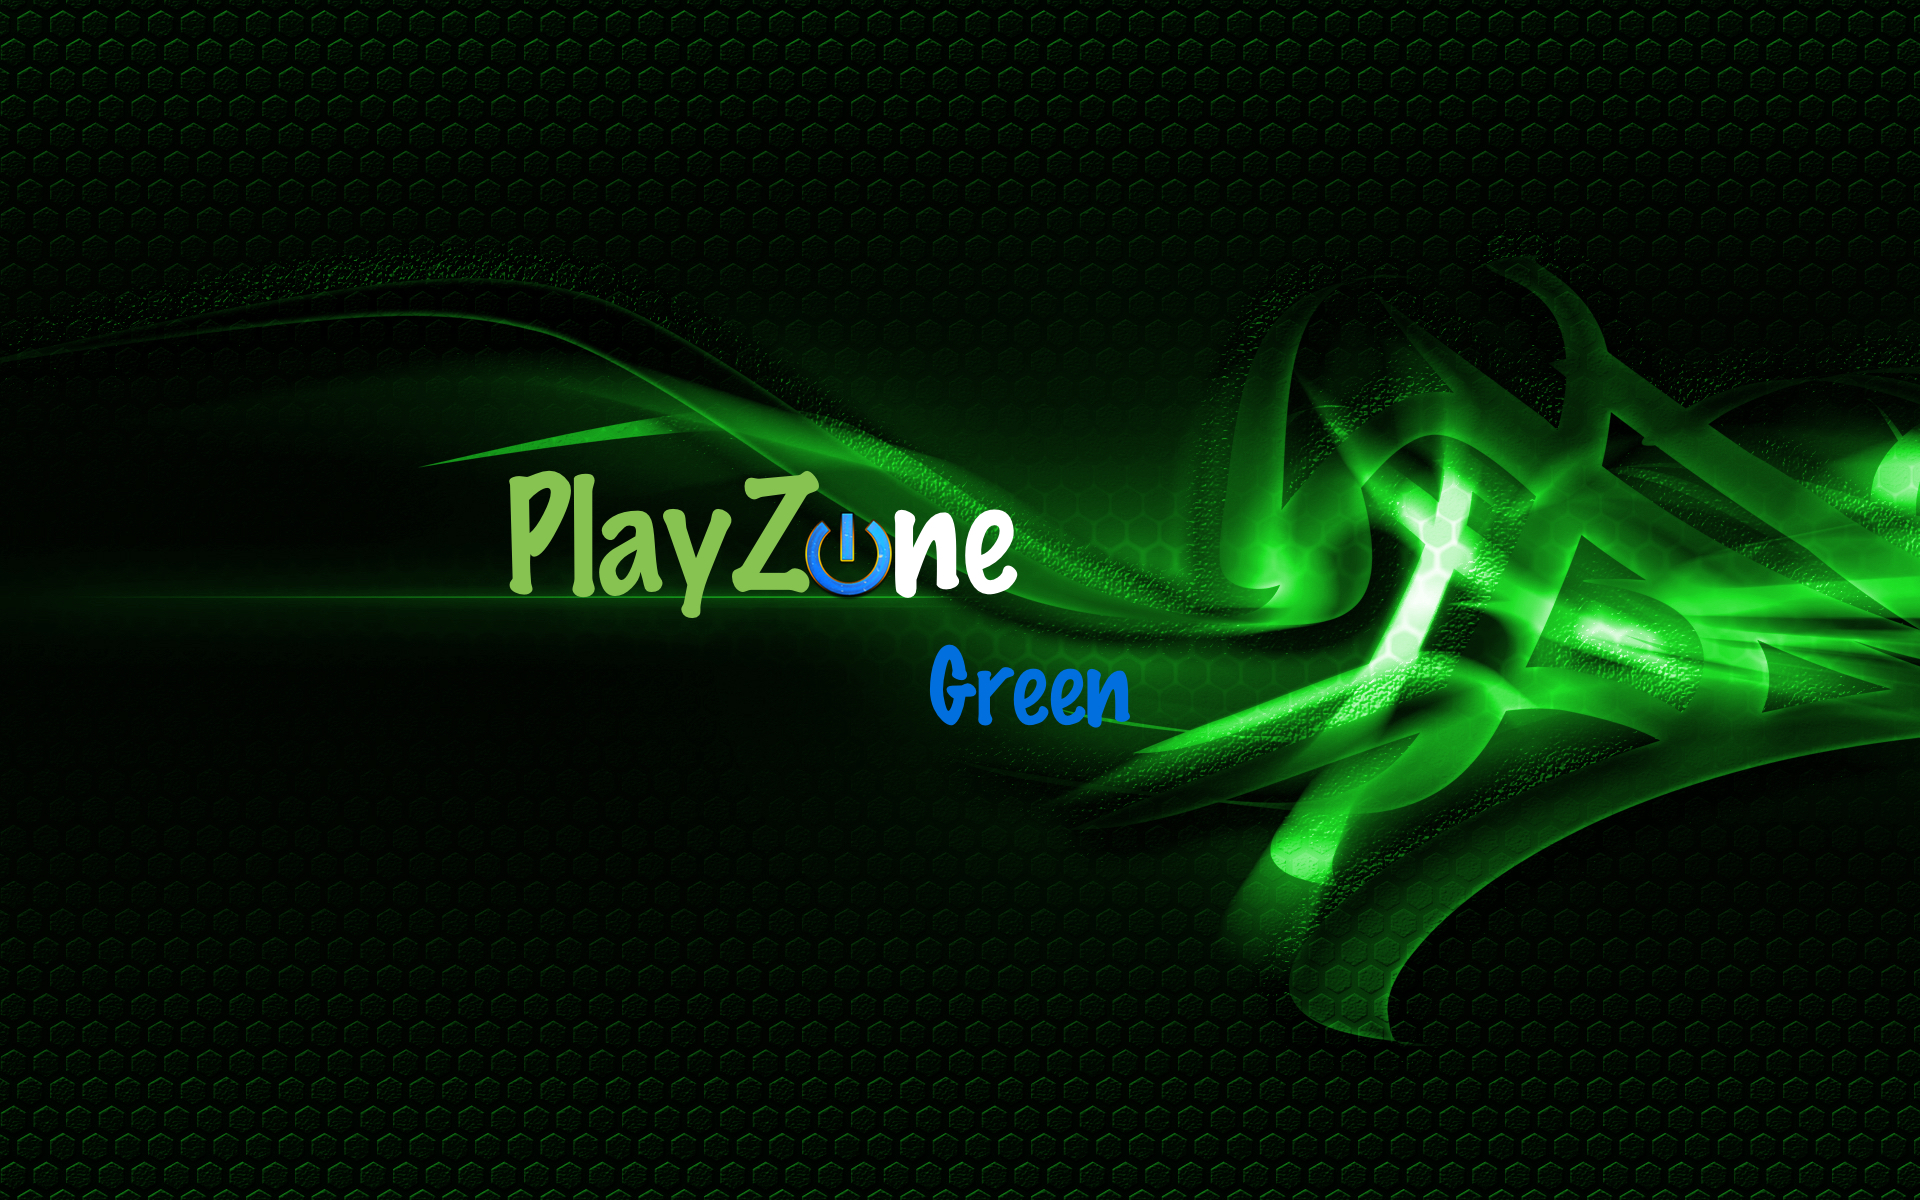 PlayZone-Green